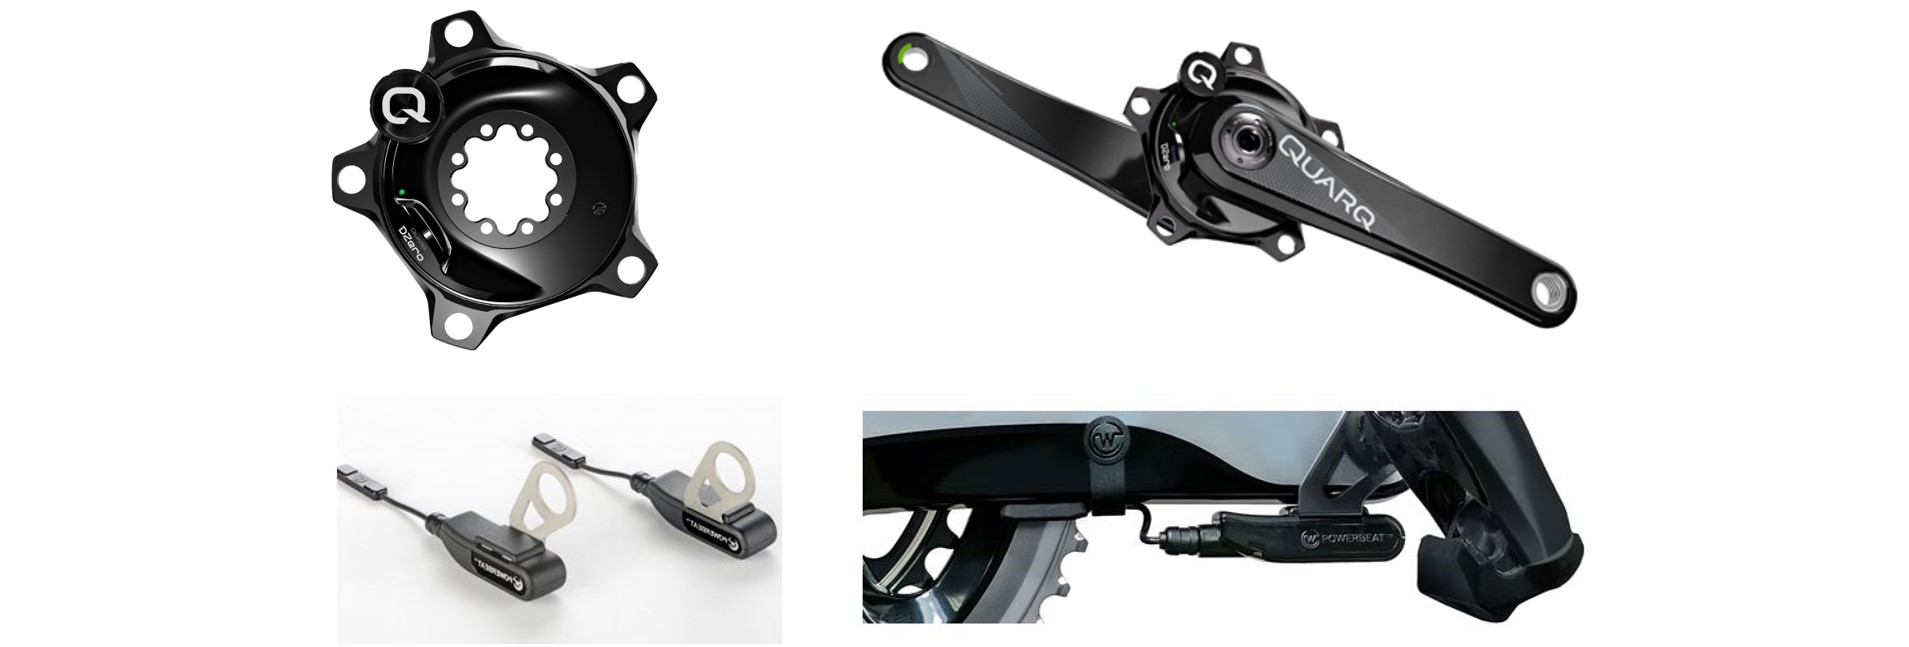 QUARQ DZERO AND WATTEAM POWERBEAT REVIEWS | In The Know Cycling